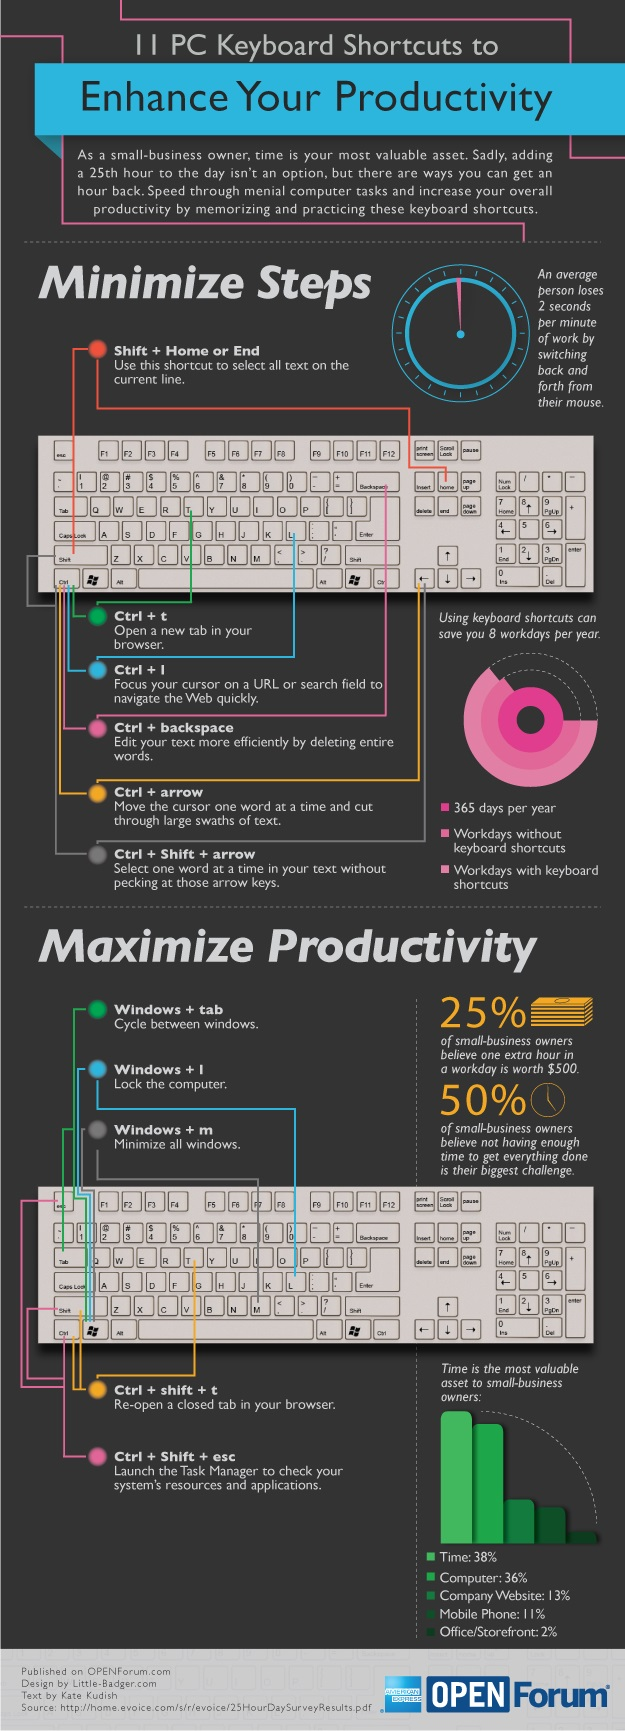 11-pc-keyboard-shortcuts-to-enhance-your-productivity